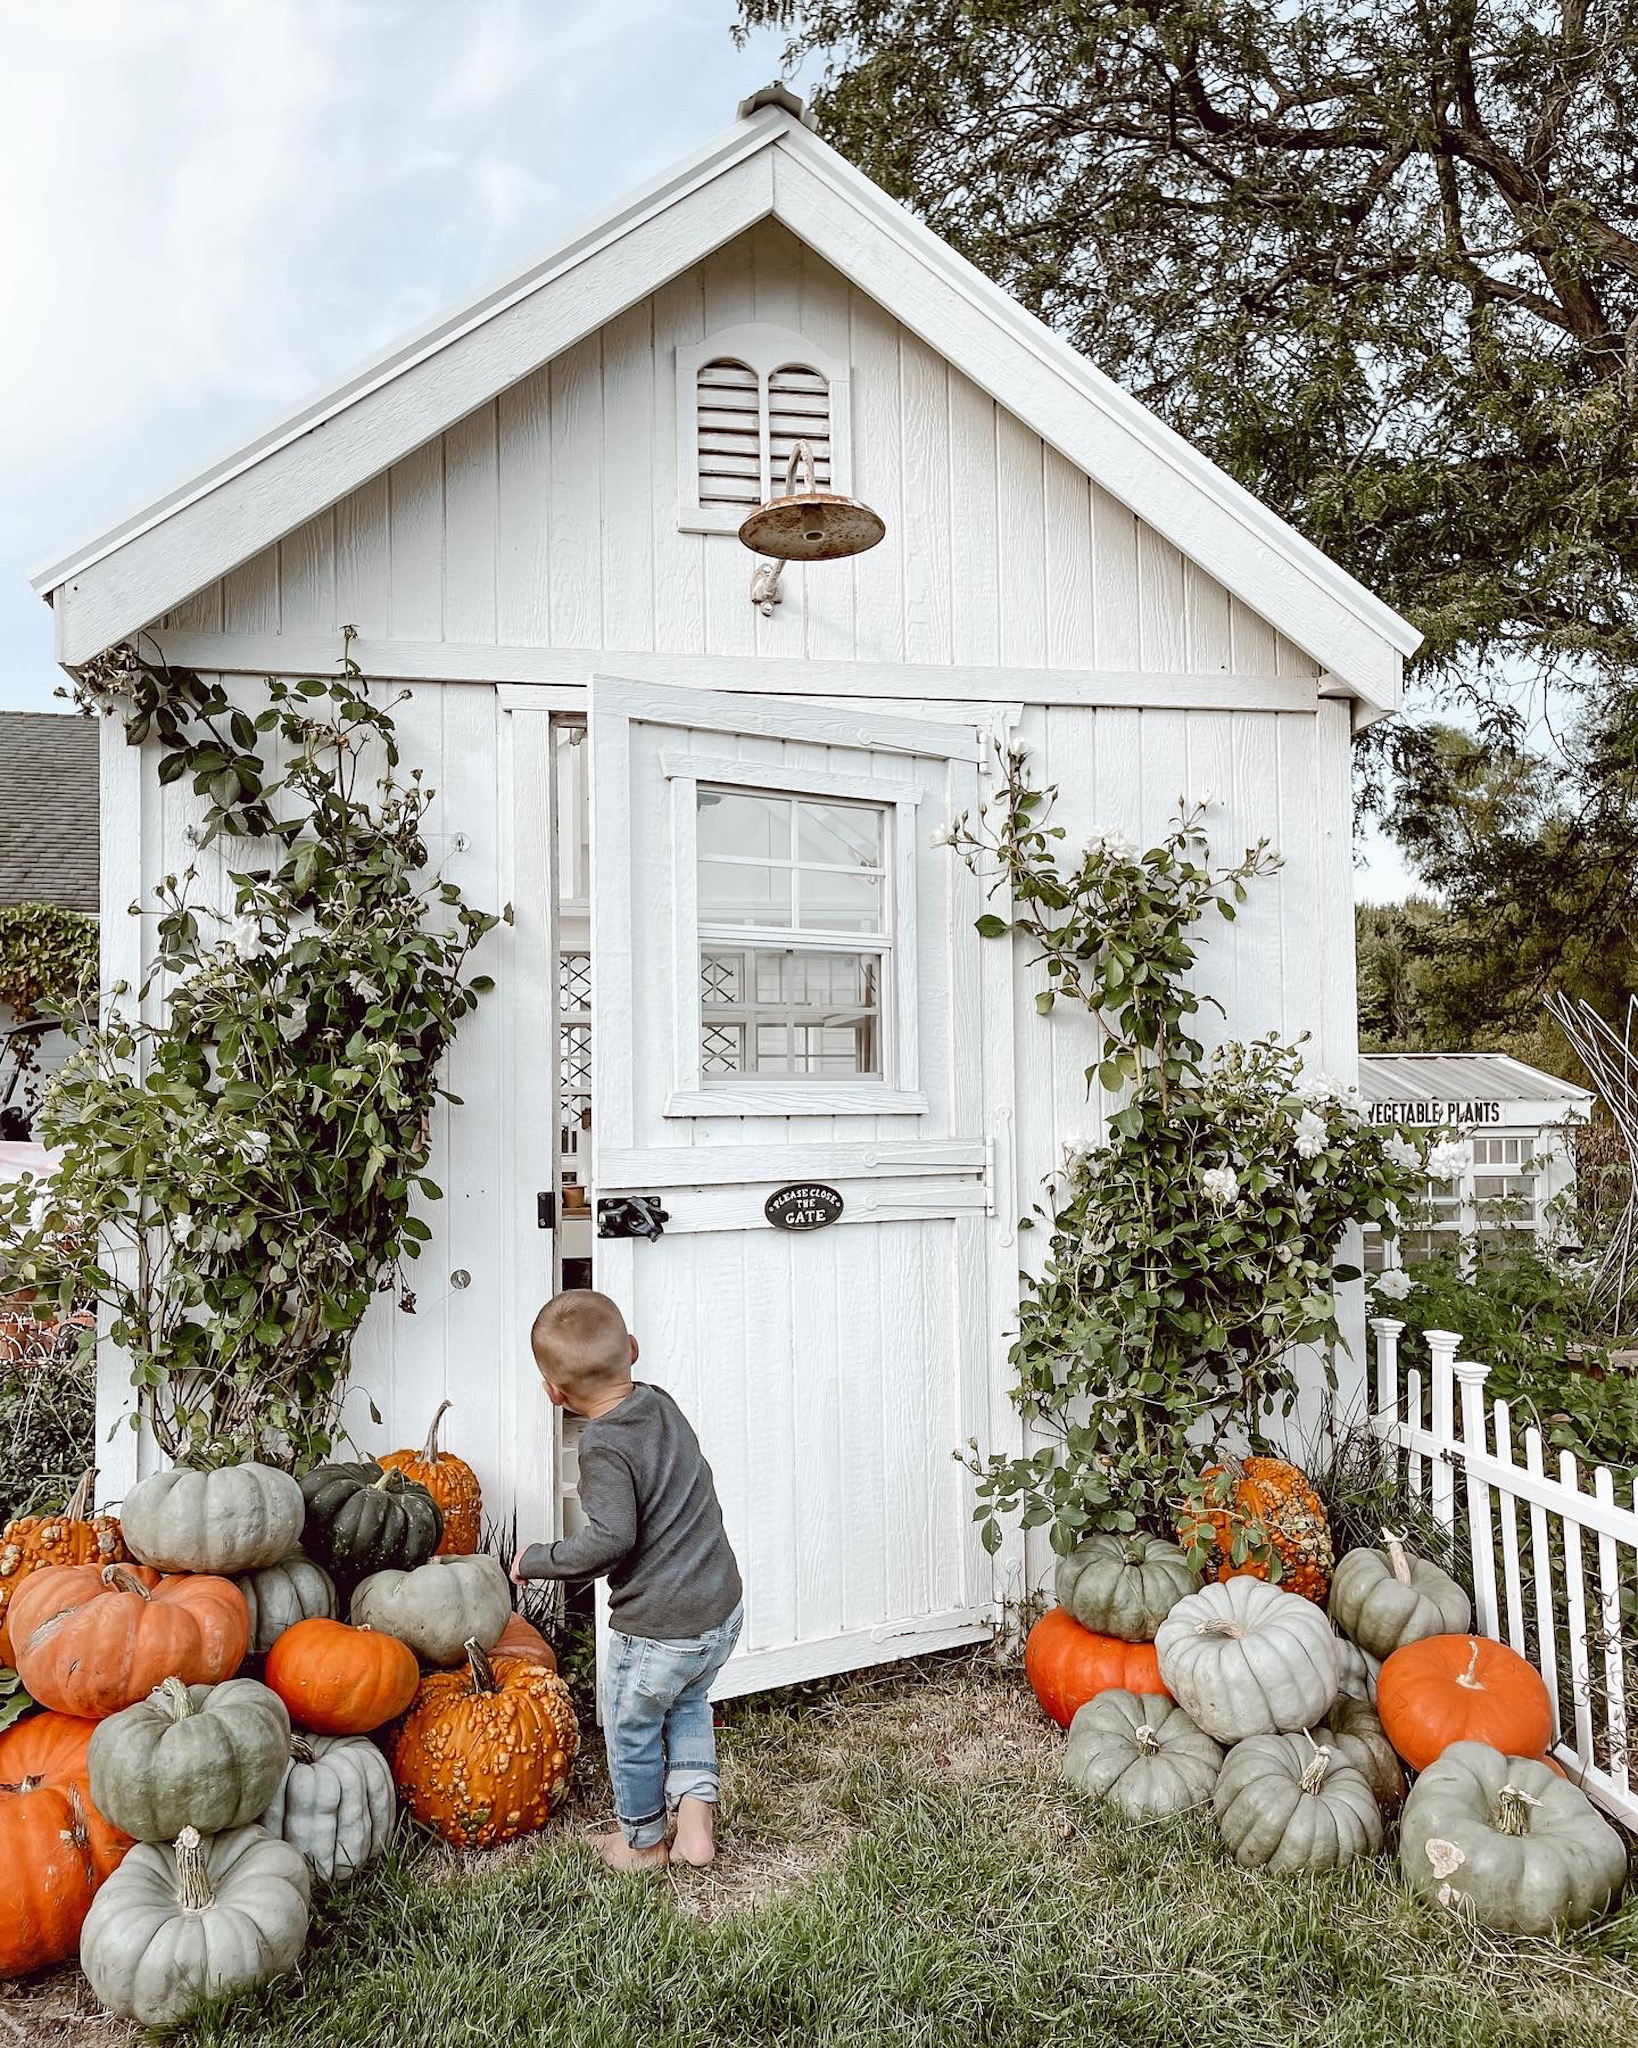 Favorite Things Friday: Fall Decor, Antique Finds, and My Friday Finds!